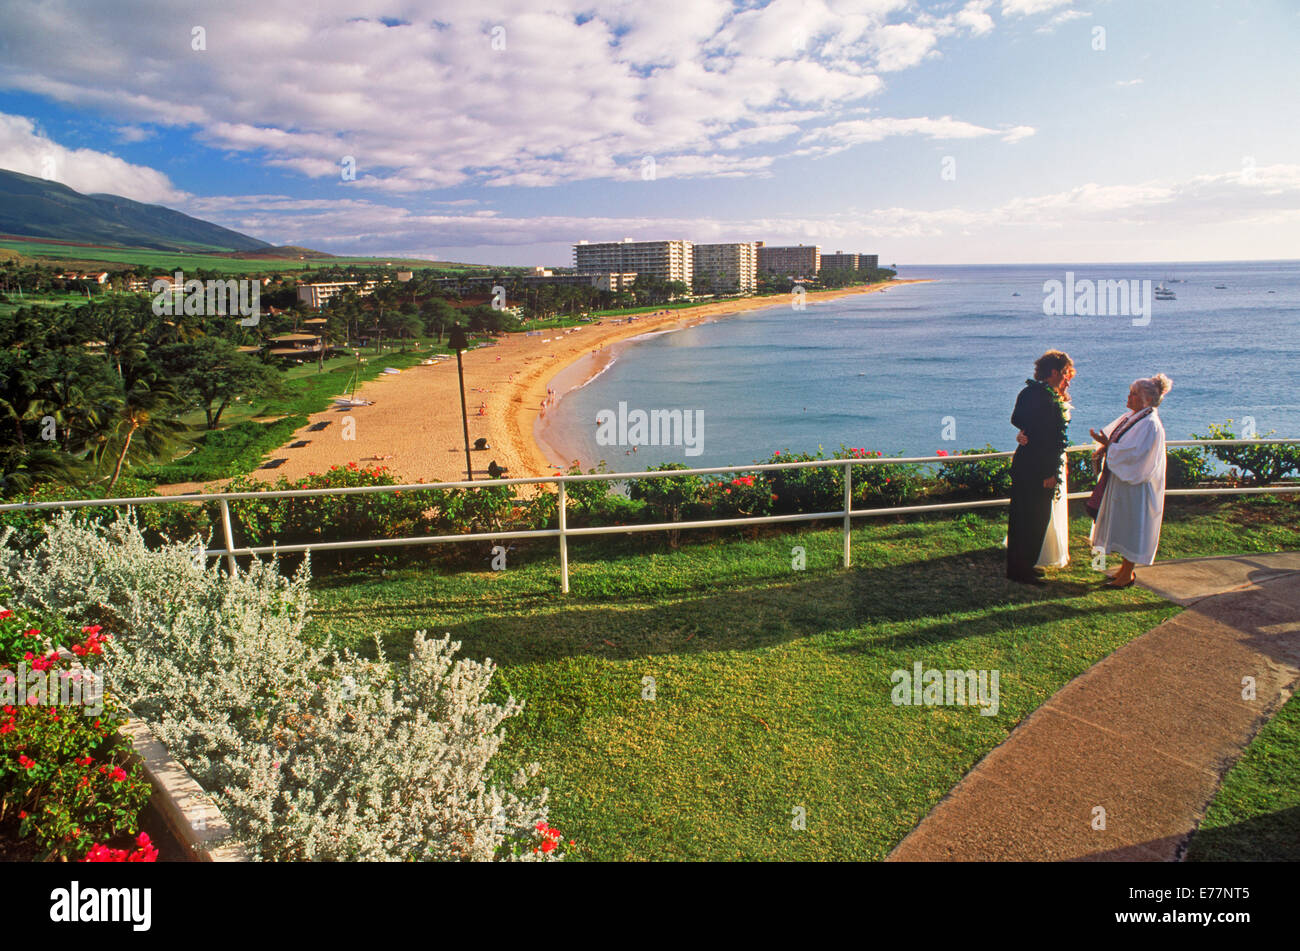 Couple taking their wedding vows above Kaanapali Beach with hotels in distance on Island of Maui in Hawaiian Islands - Stock Image